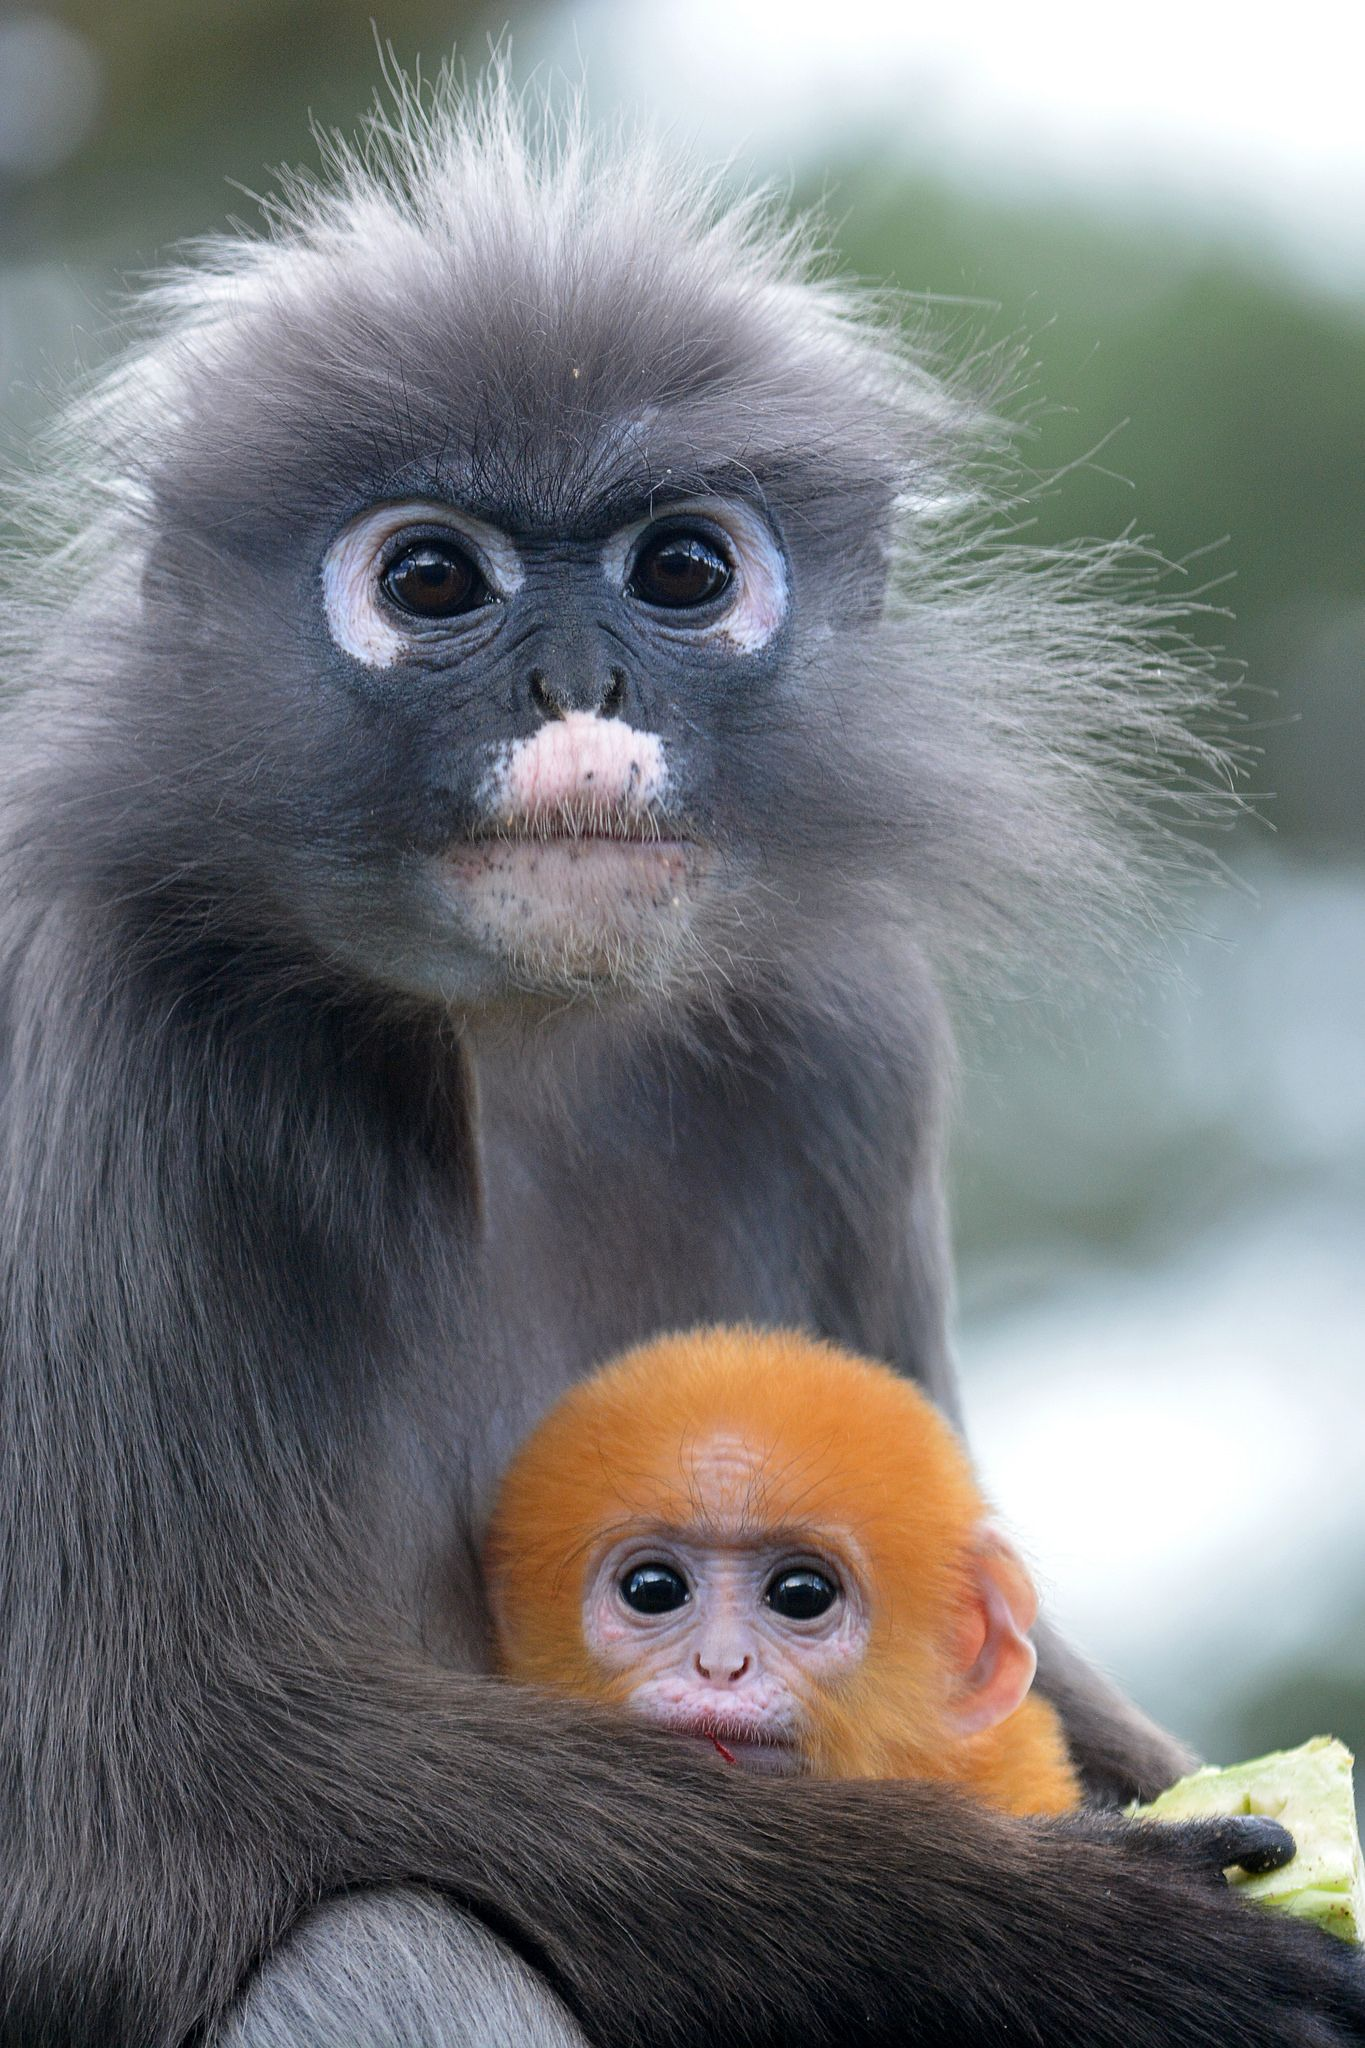 Dusky Leaf Monkey Young Brillangoer Trachypithecus Obscurus Burgers Zoo Arnhem The Netherlands Conservation Sta Cute Baby Animals Cute Animals Animals